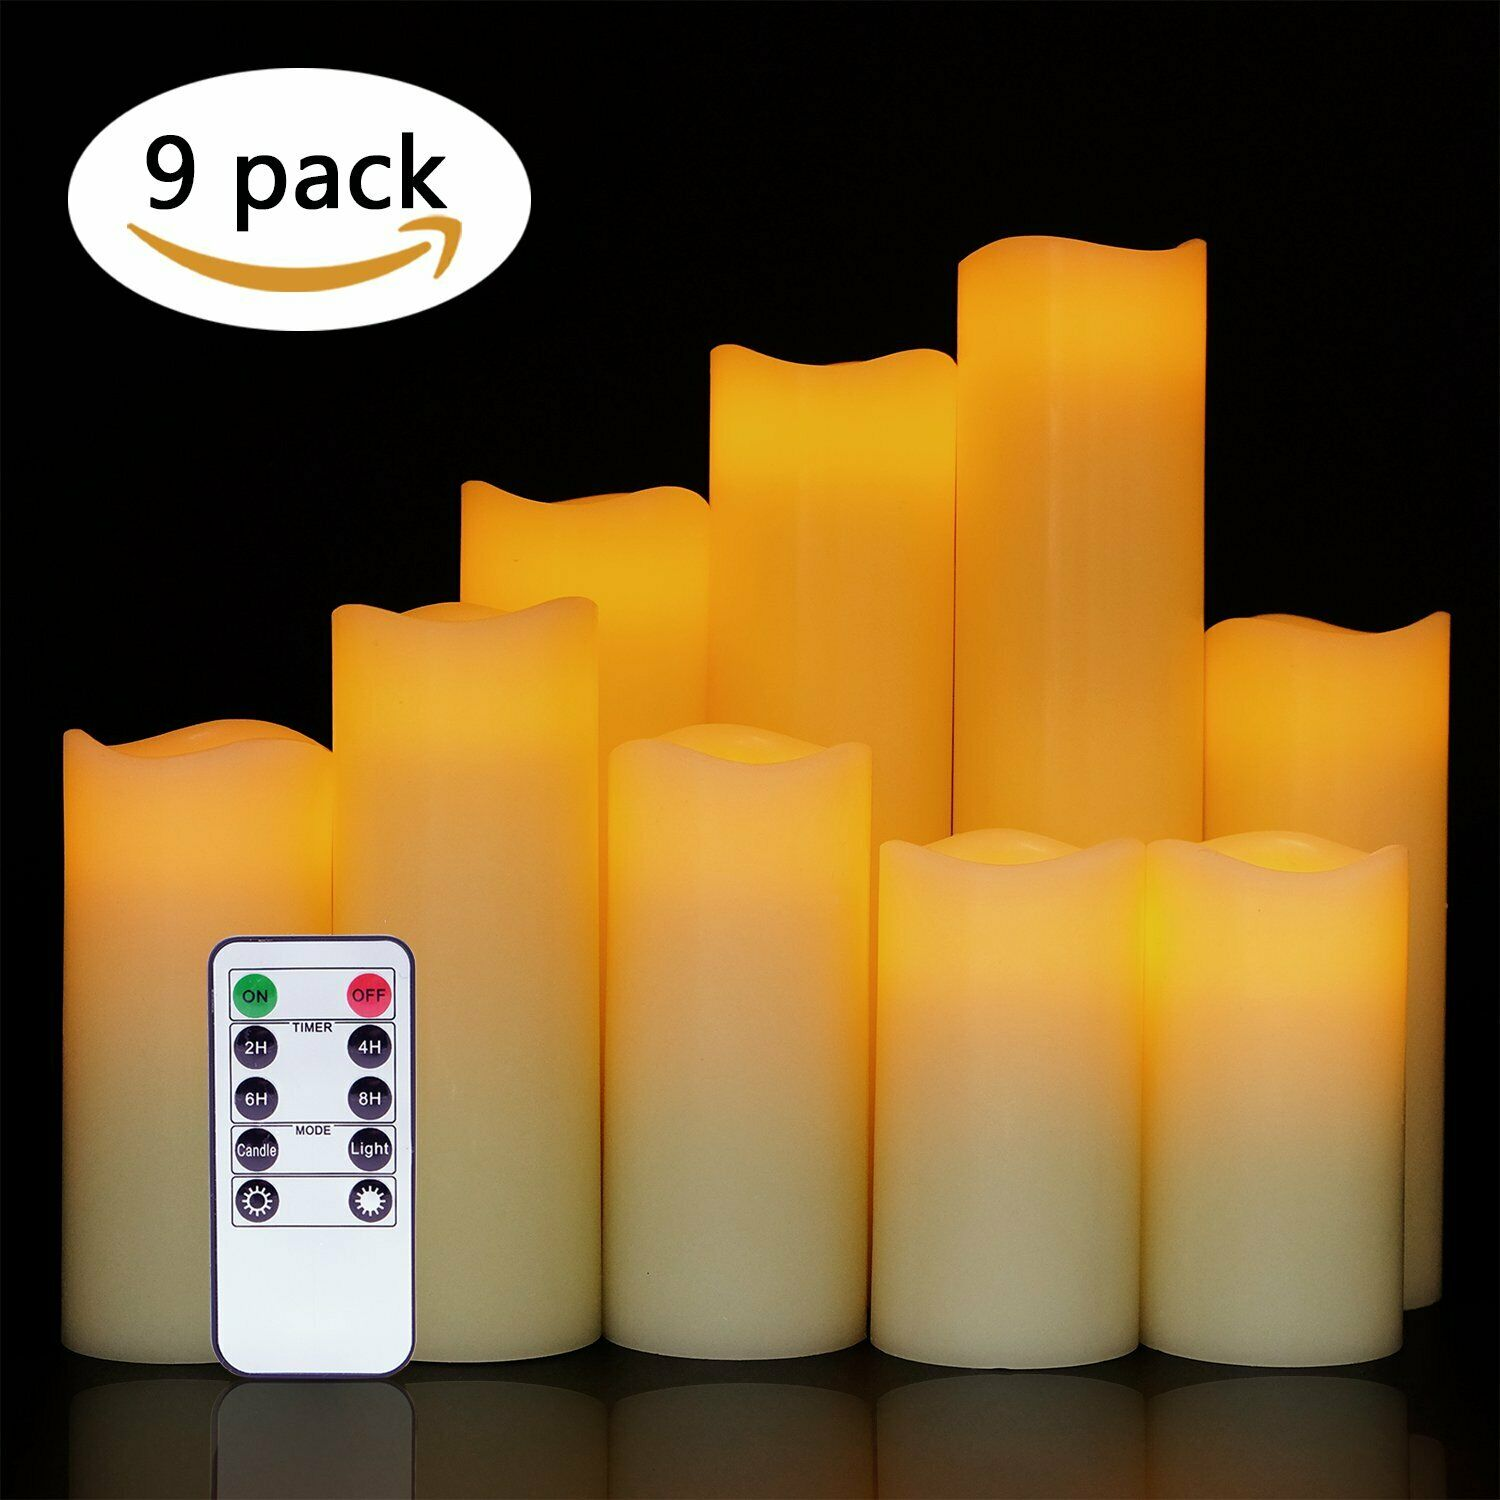 Dripping Flameless Candles Flickering LED Candles Set of 9 with Remote Control